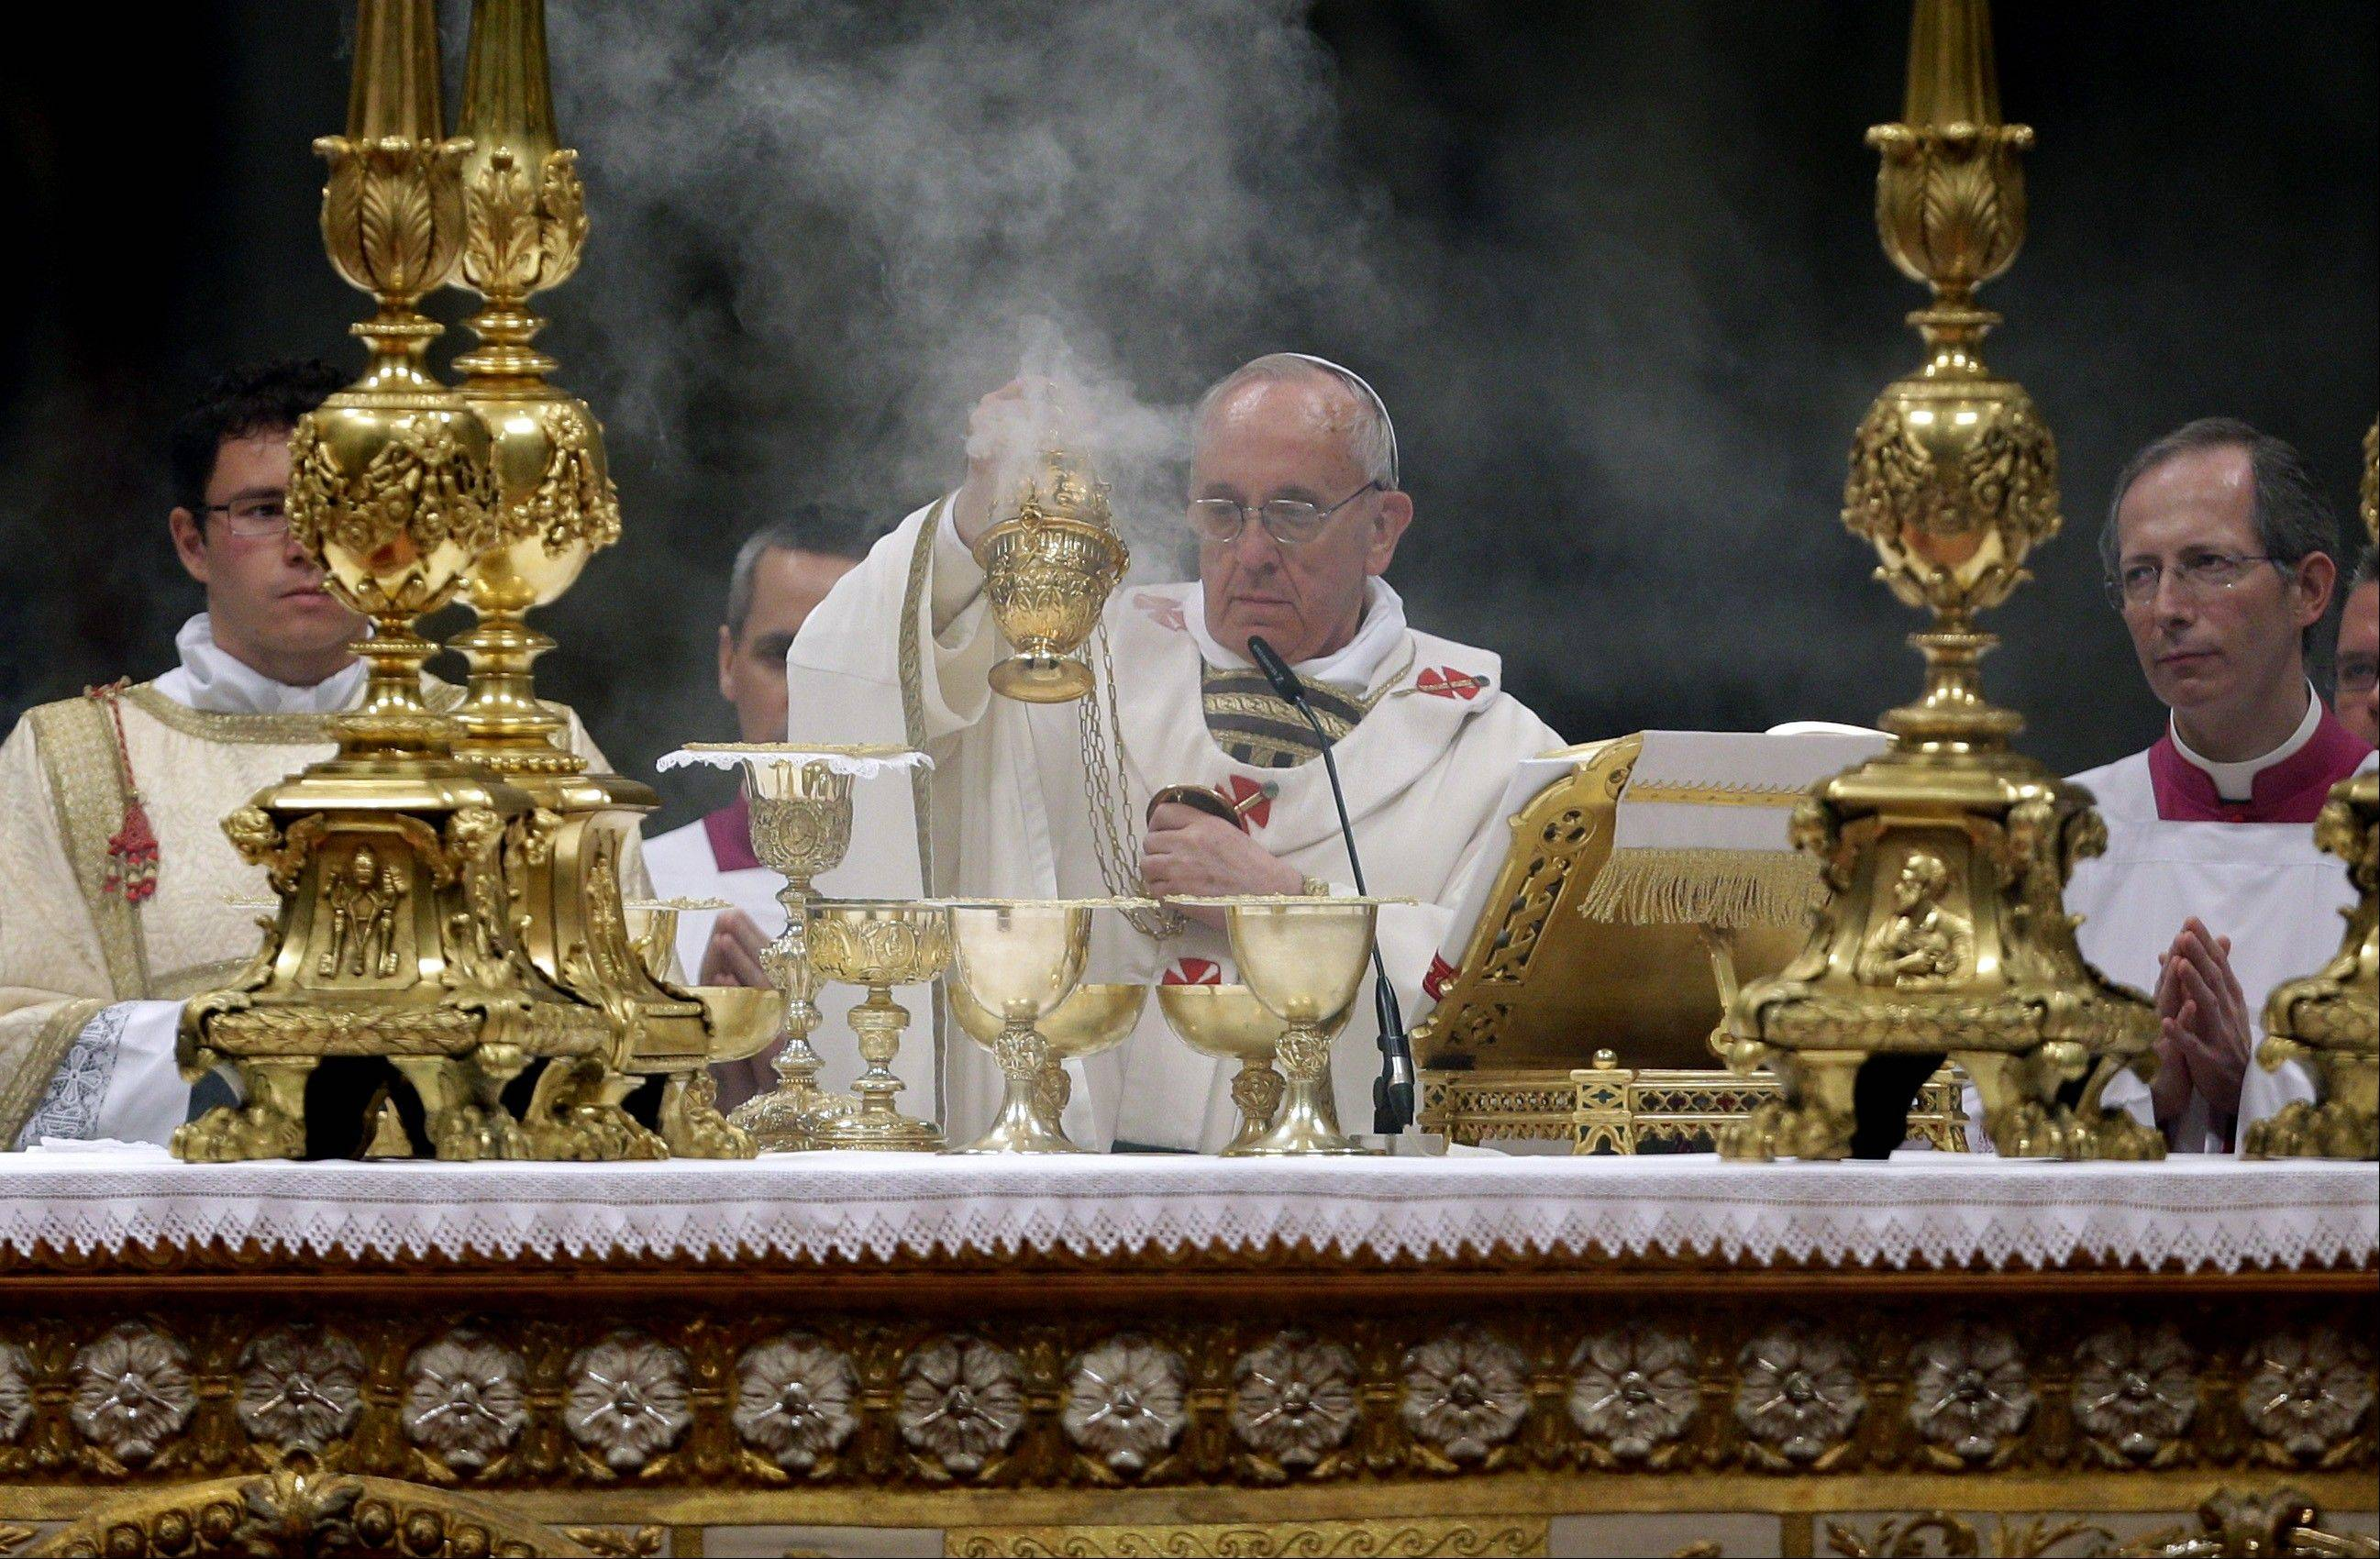 Pope Francis leads the Easter vigil service Saturday in St. Peter's Basilica, at the Vatican.